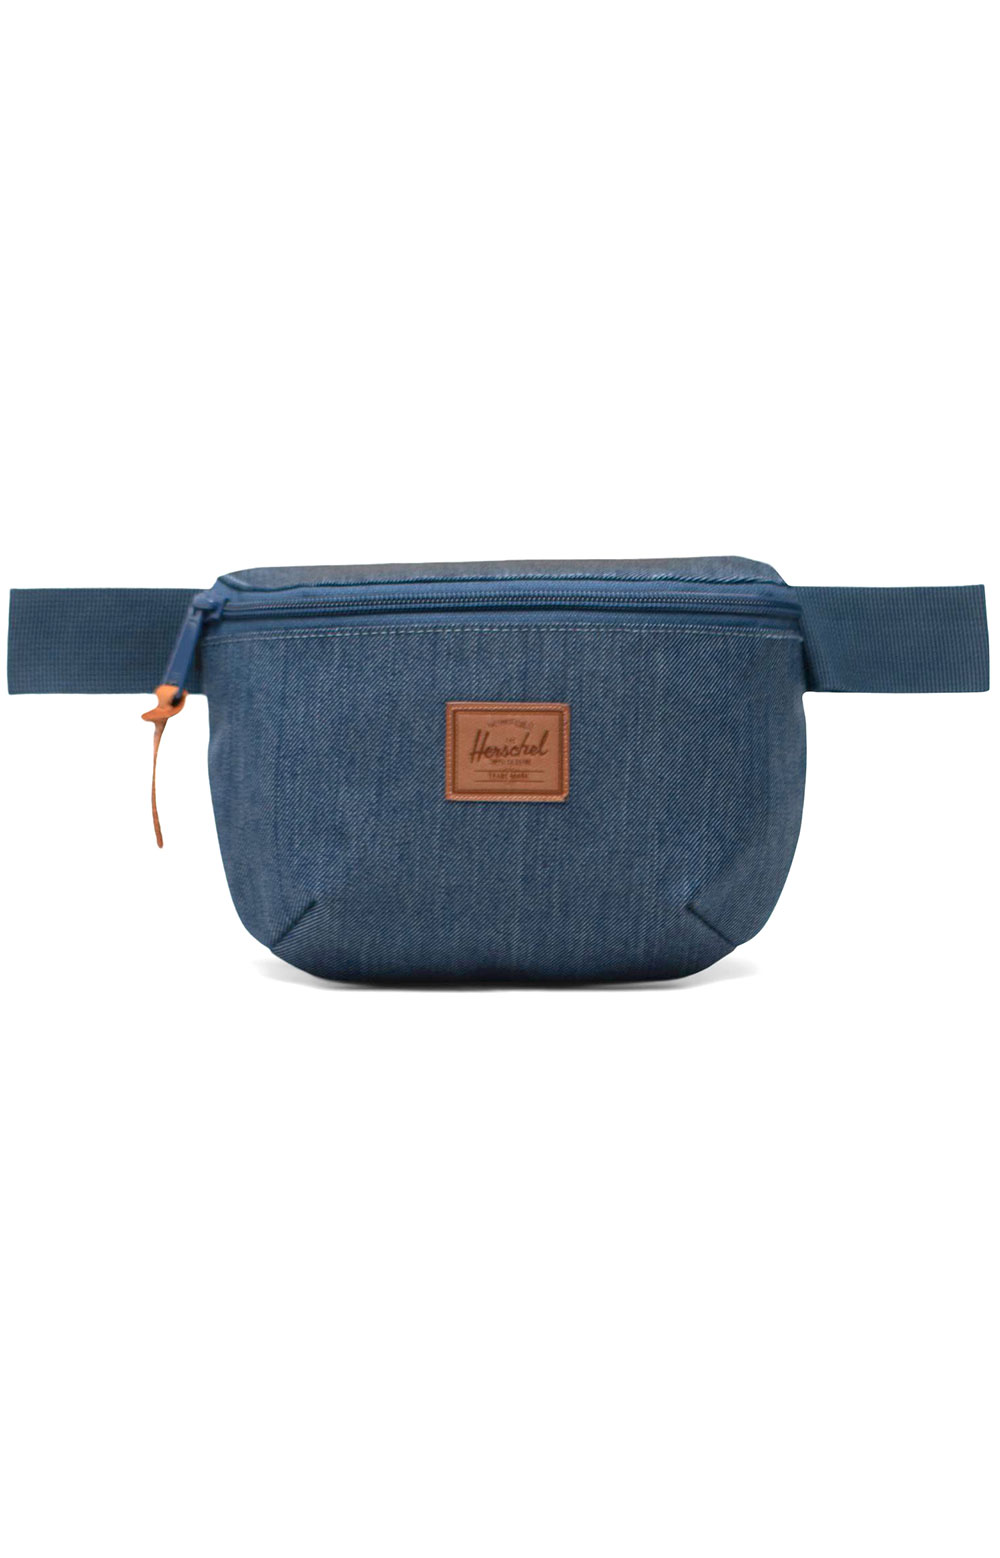 Fourteen Hip Pack - Indigo Denim